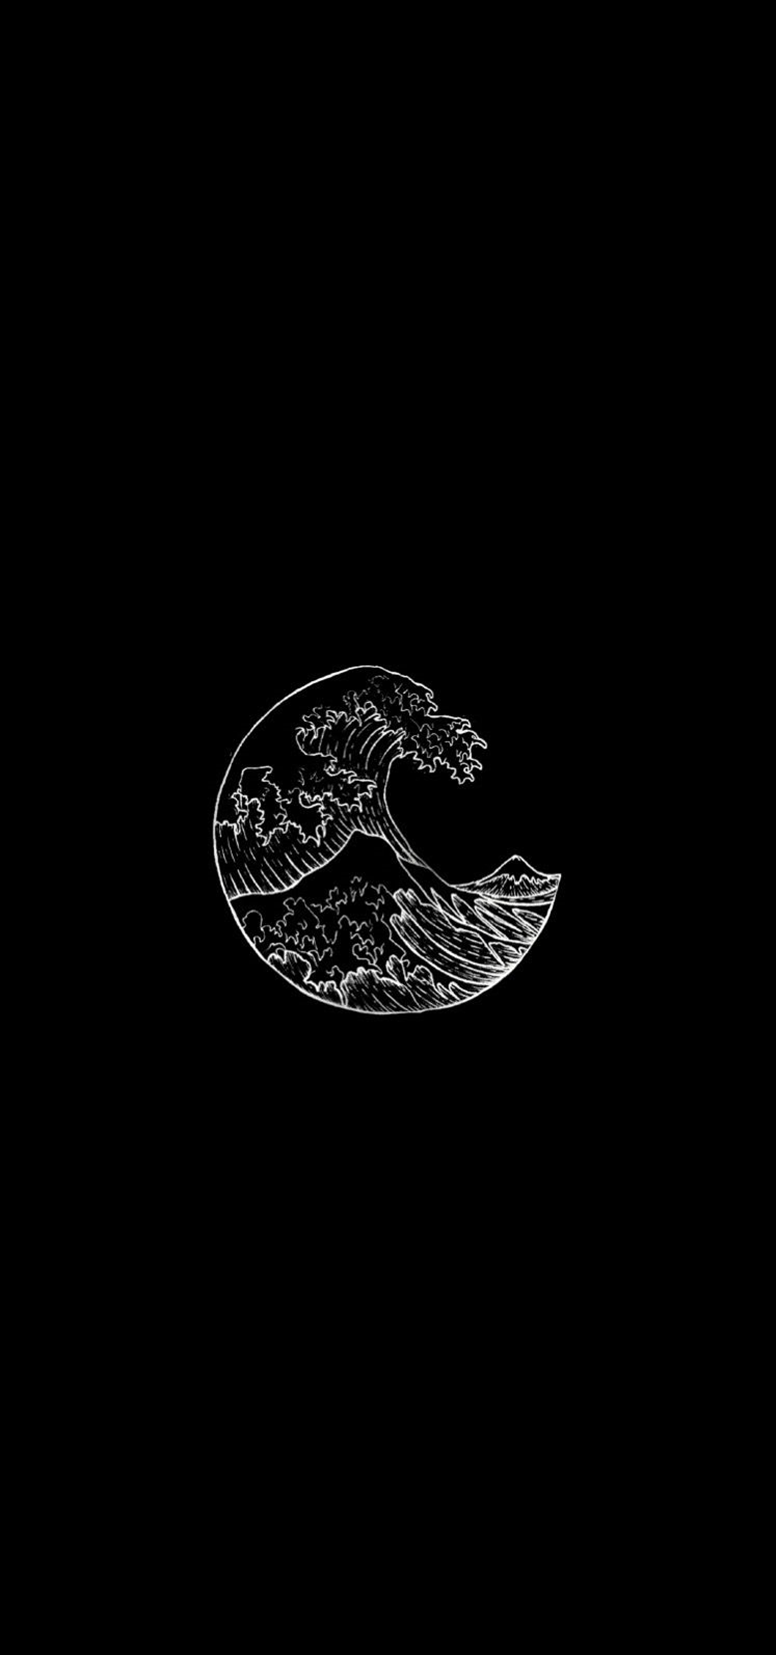 Aesthetic Wallpapers Google Search Black Aesthetic Wallpaper Uhd Wallpaper Waves Wallpaper